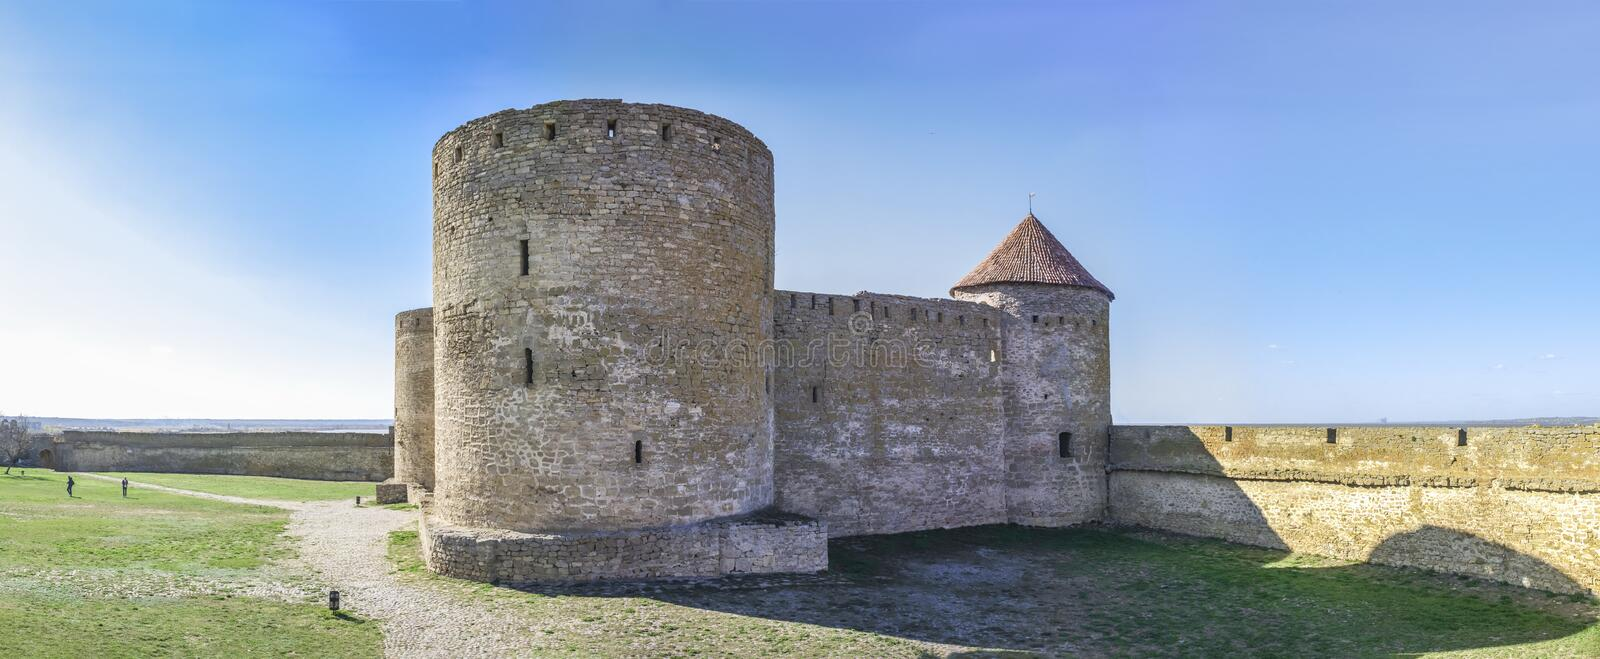 Fortress Walls of the Akkerman Citadel in Ukraine royalty free stock photos